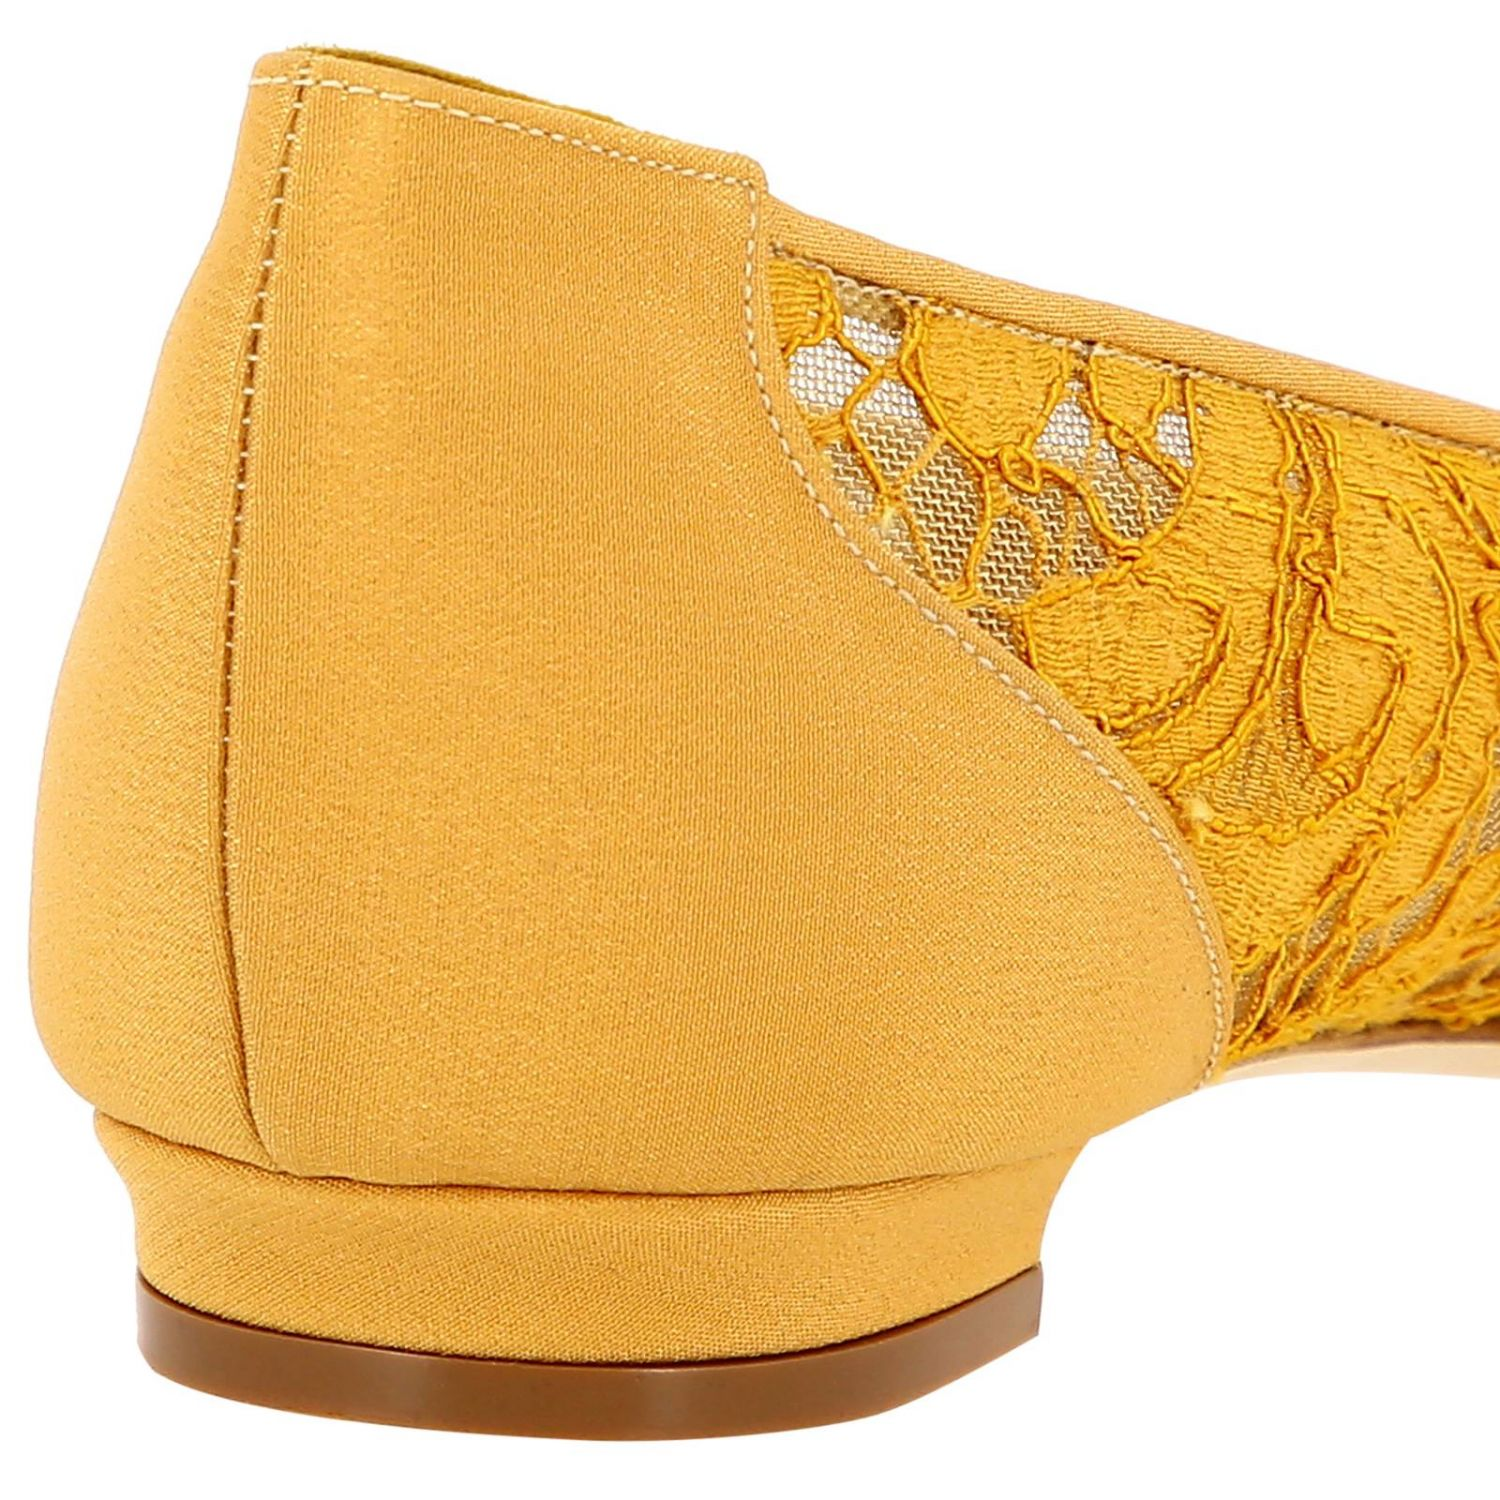 Hangisi Manolo Blahnik ballet flats in lace with smoky rhinestone buckle mustard 4